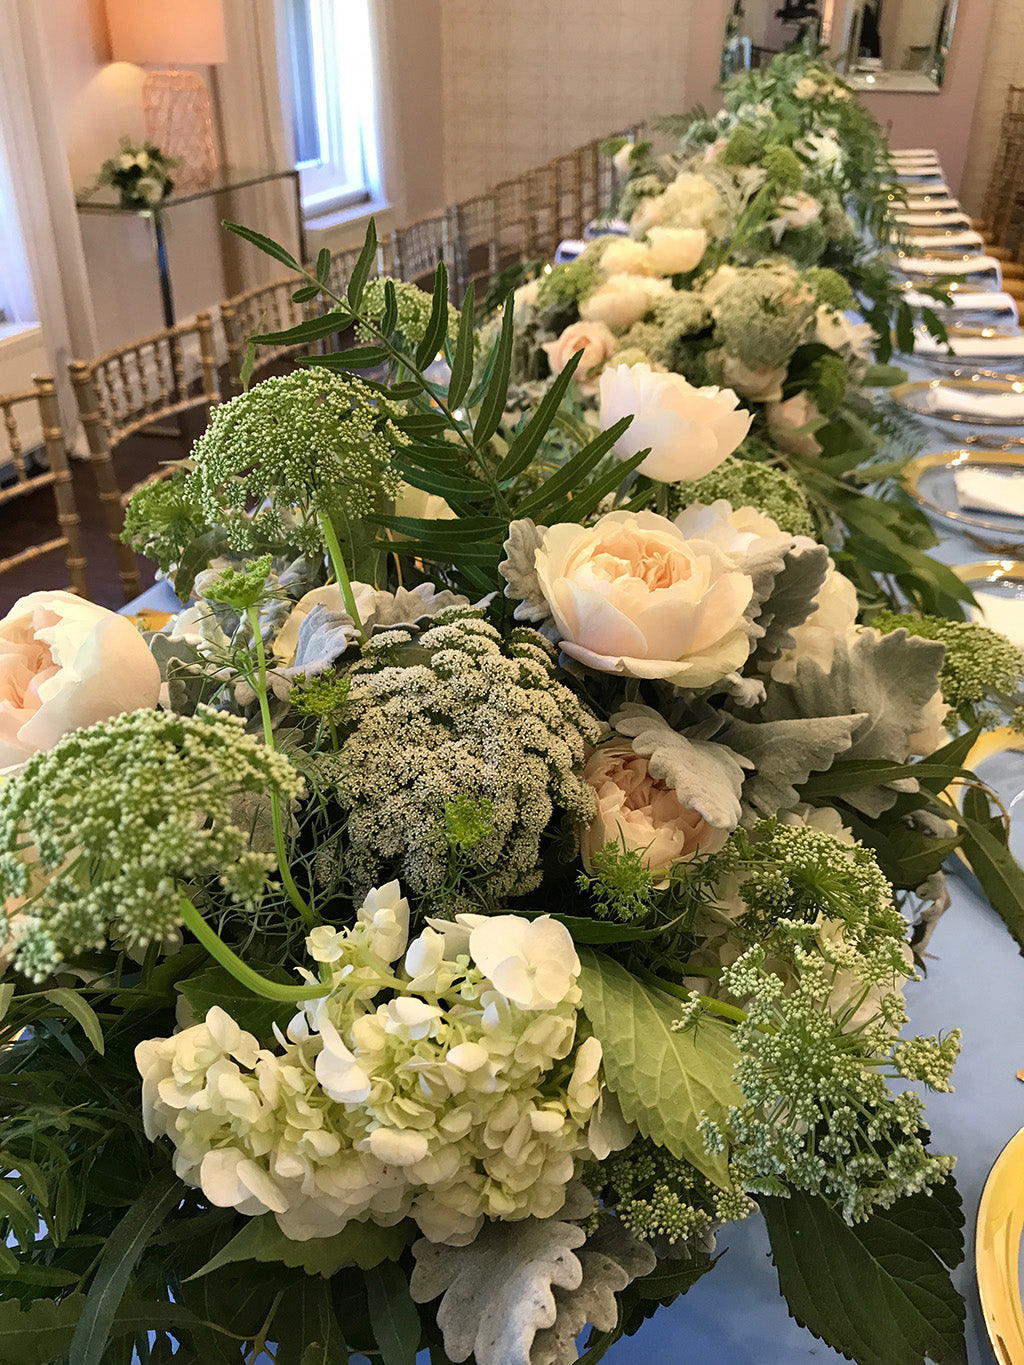 Wedding flowers at the reception table setting